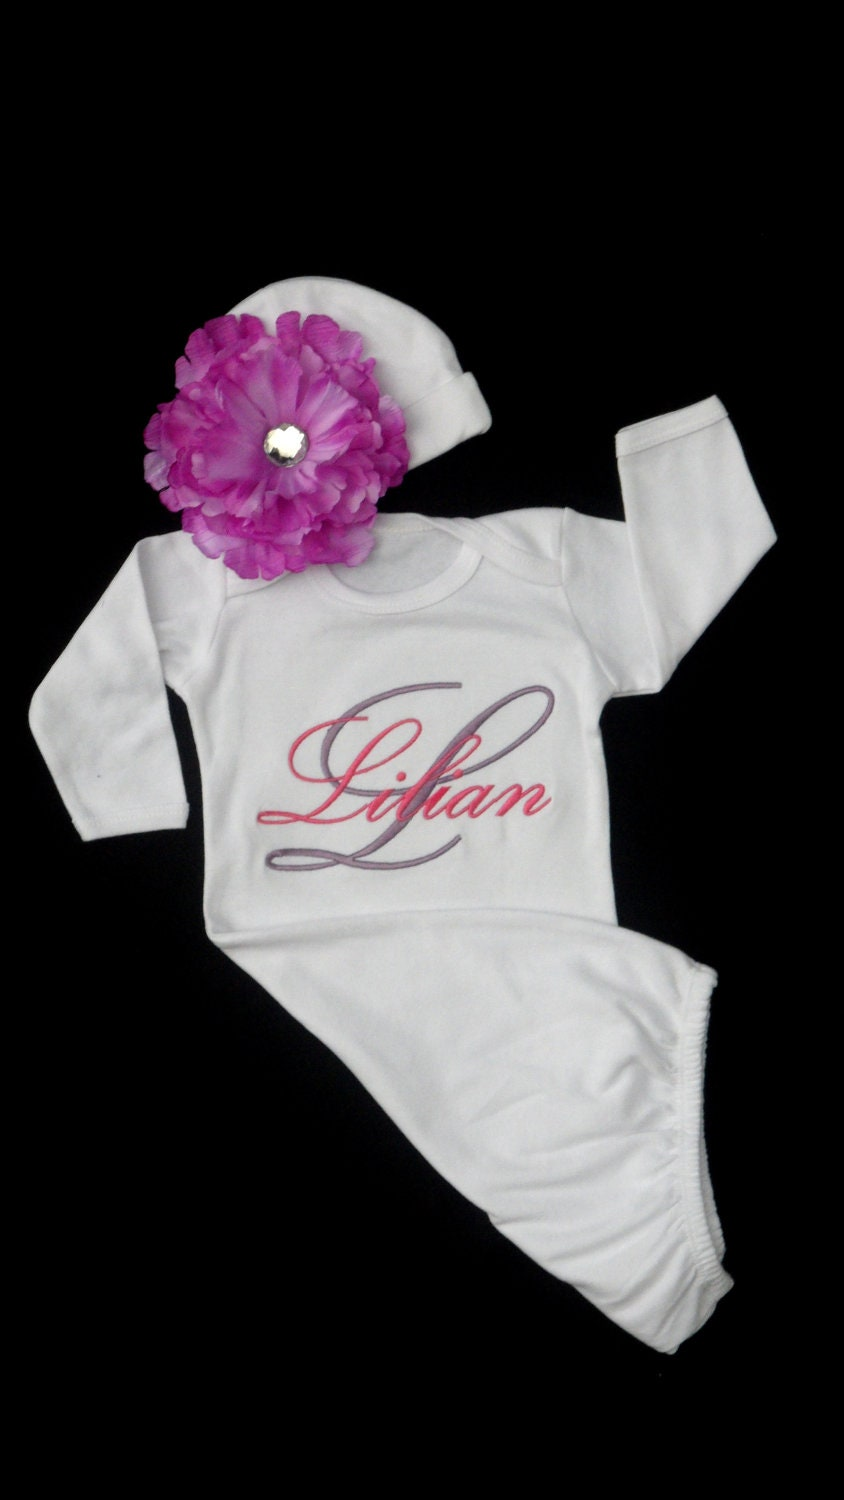 Nowadays, personalized baby clothes are getting more popular because parents love to see the name of their baby on the clothes. At Personal Creations, we have great baby gift options, like personalized embroidered baby clothing for boys and girls.